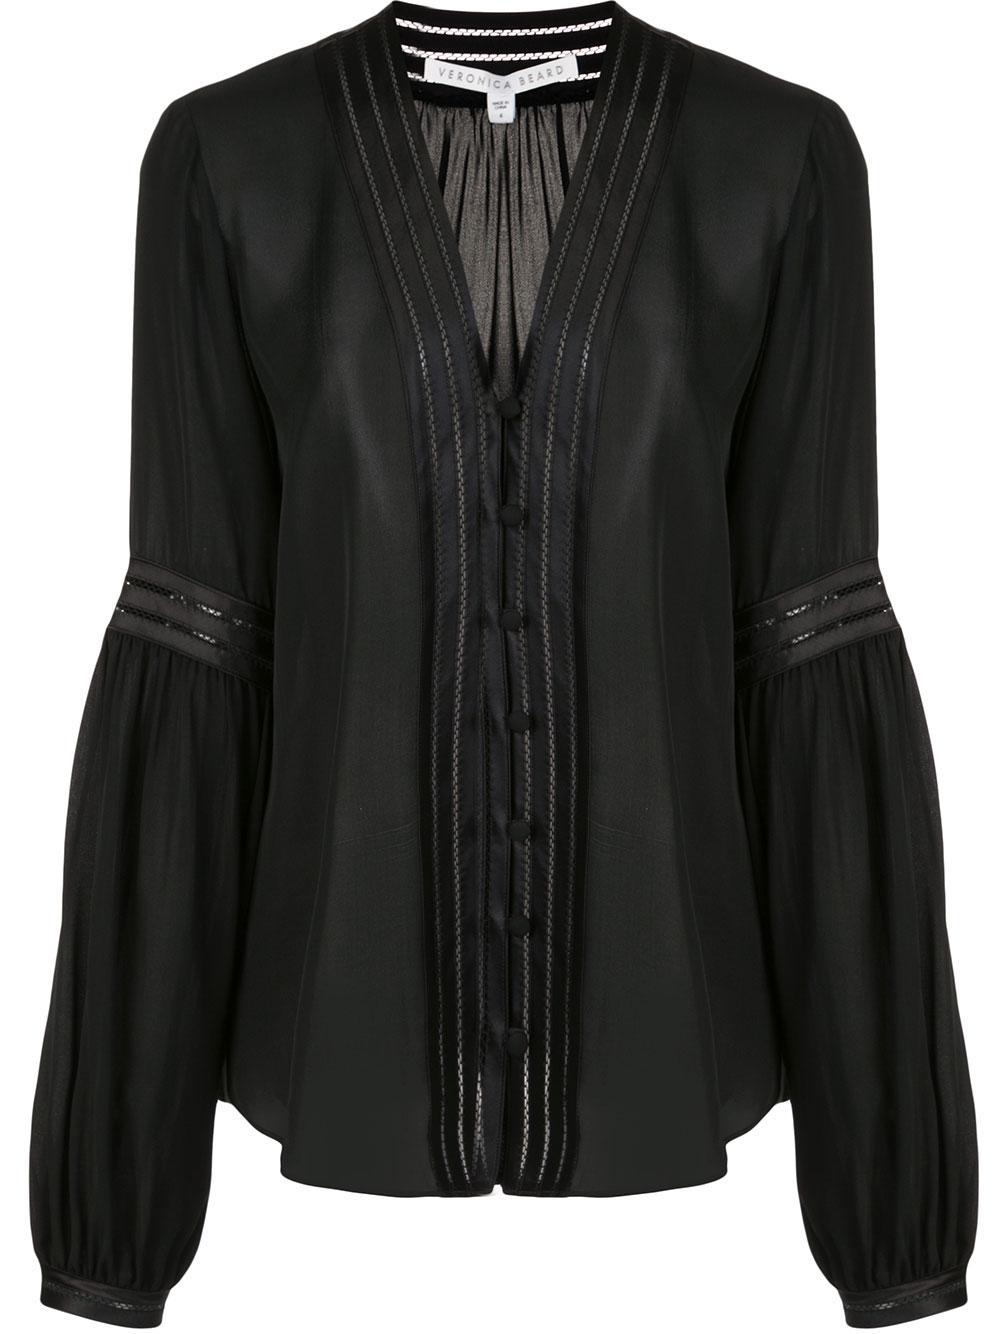 Yumi Long Sleeve Button Up V-Neck Blouse